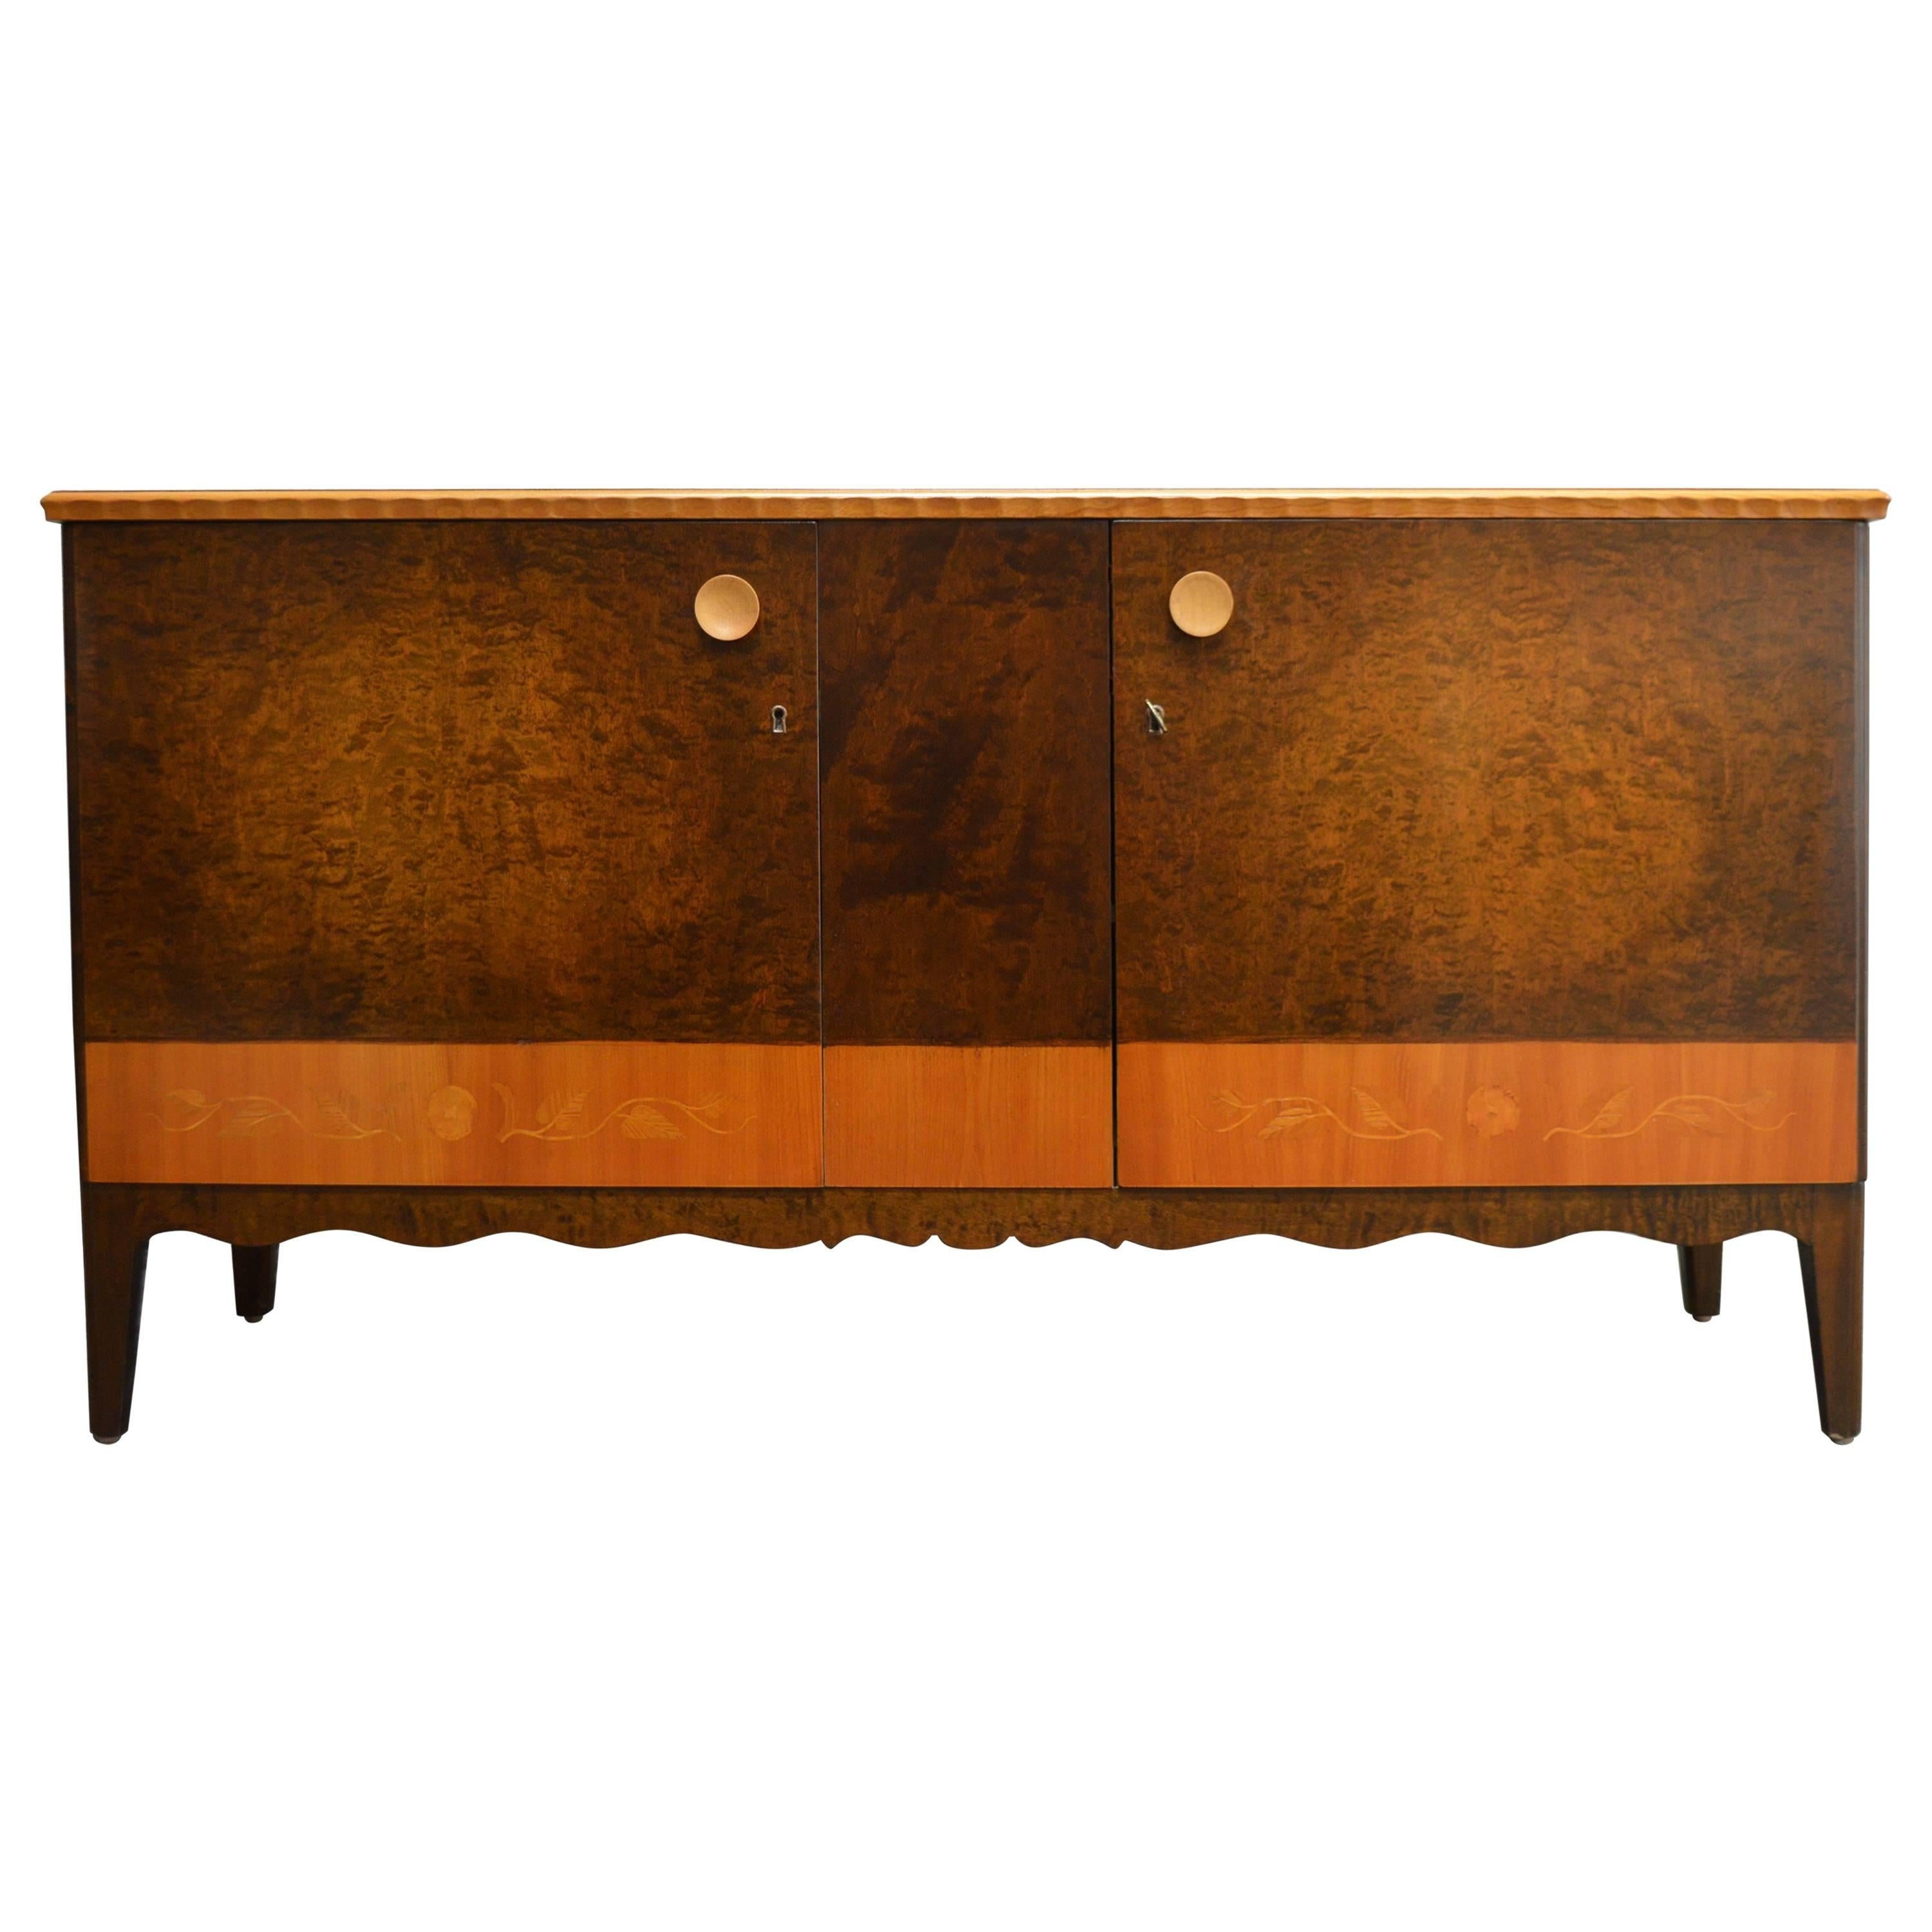 swedish neoclassical buffet sideboard server for sale at 1stdibs rh 1stdibs com